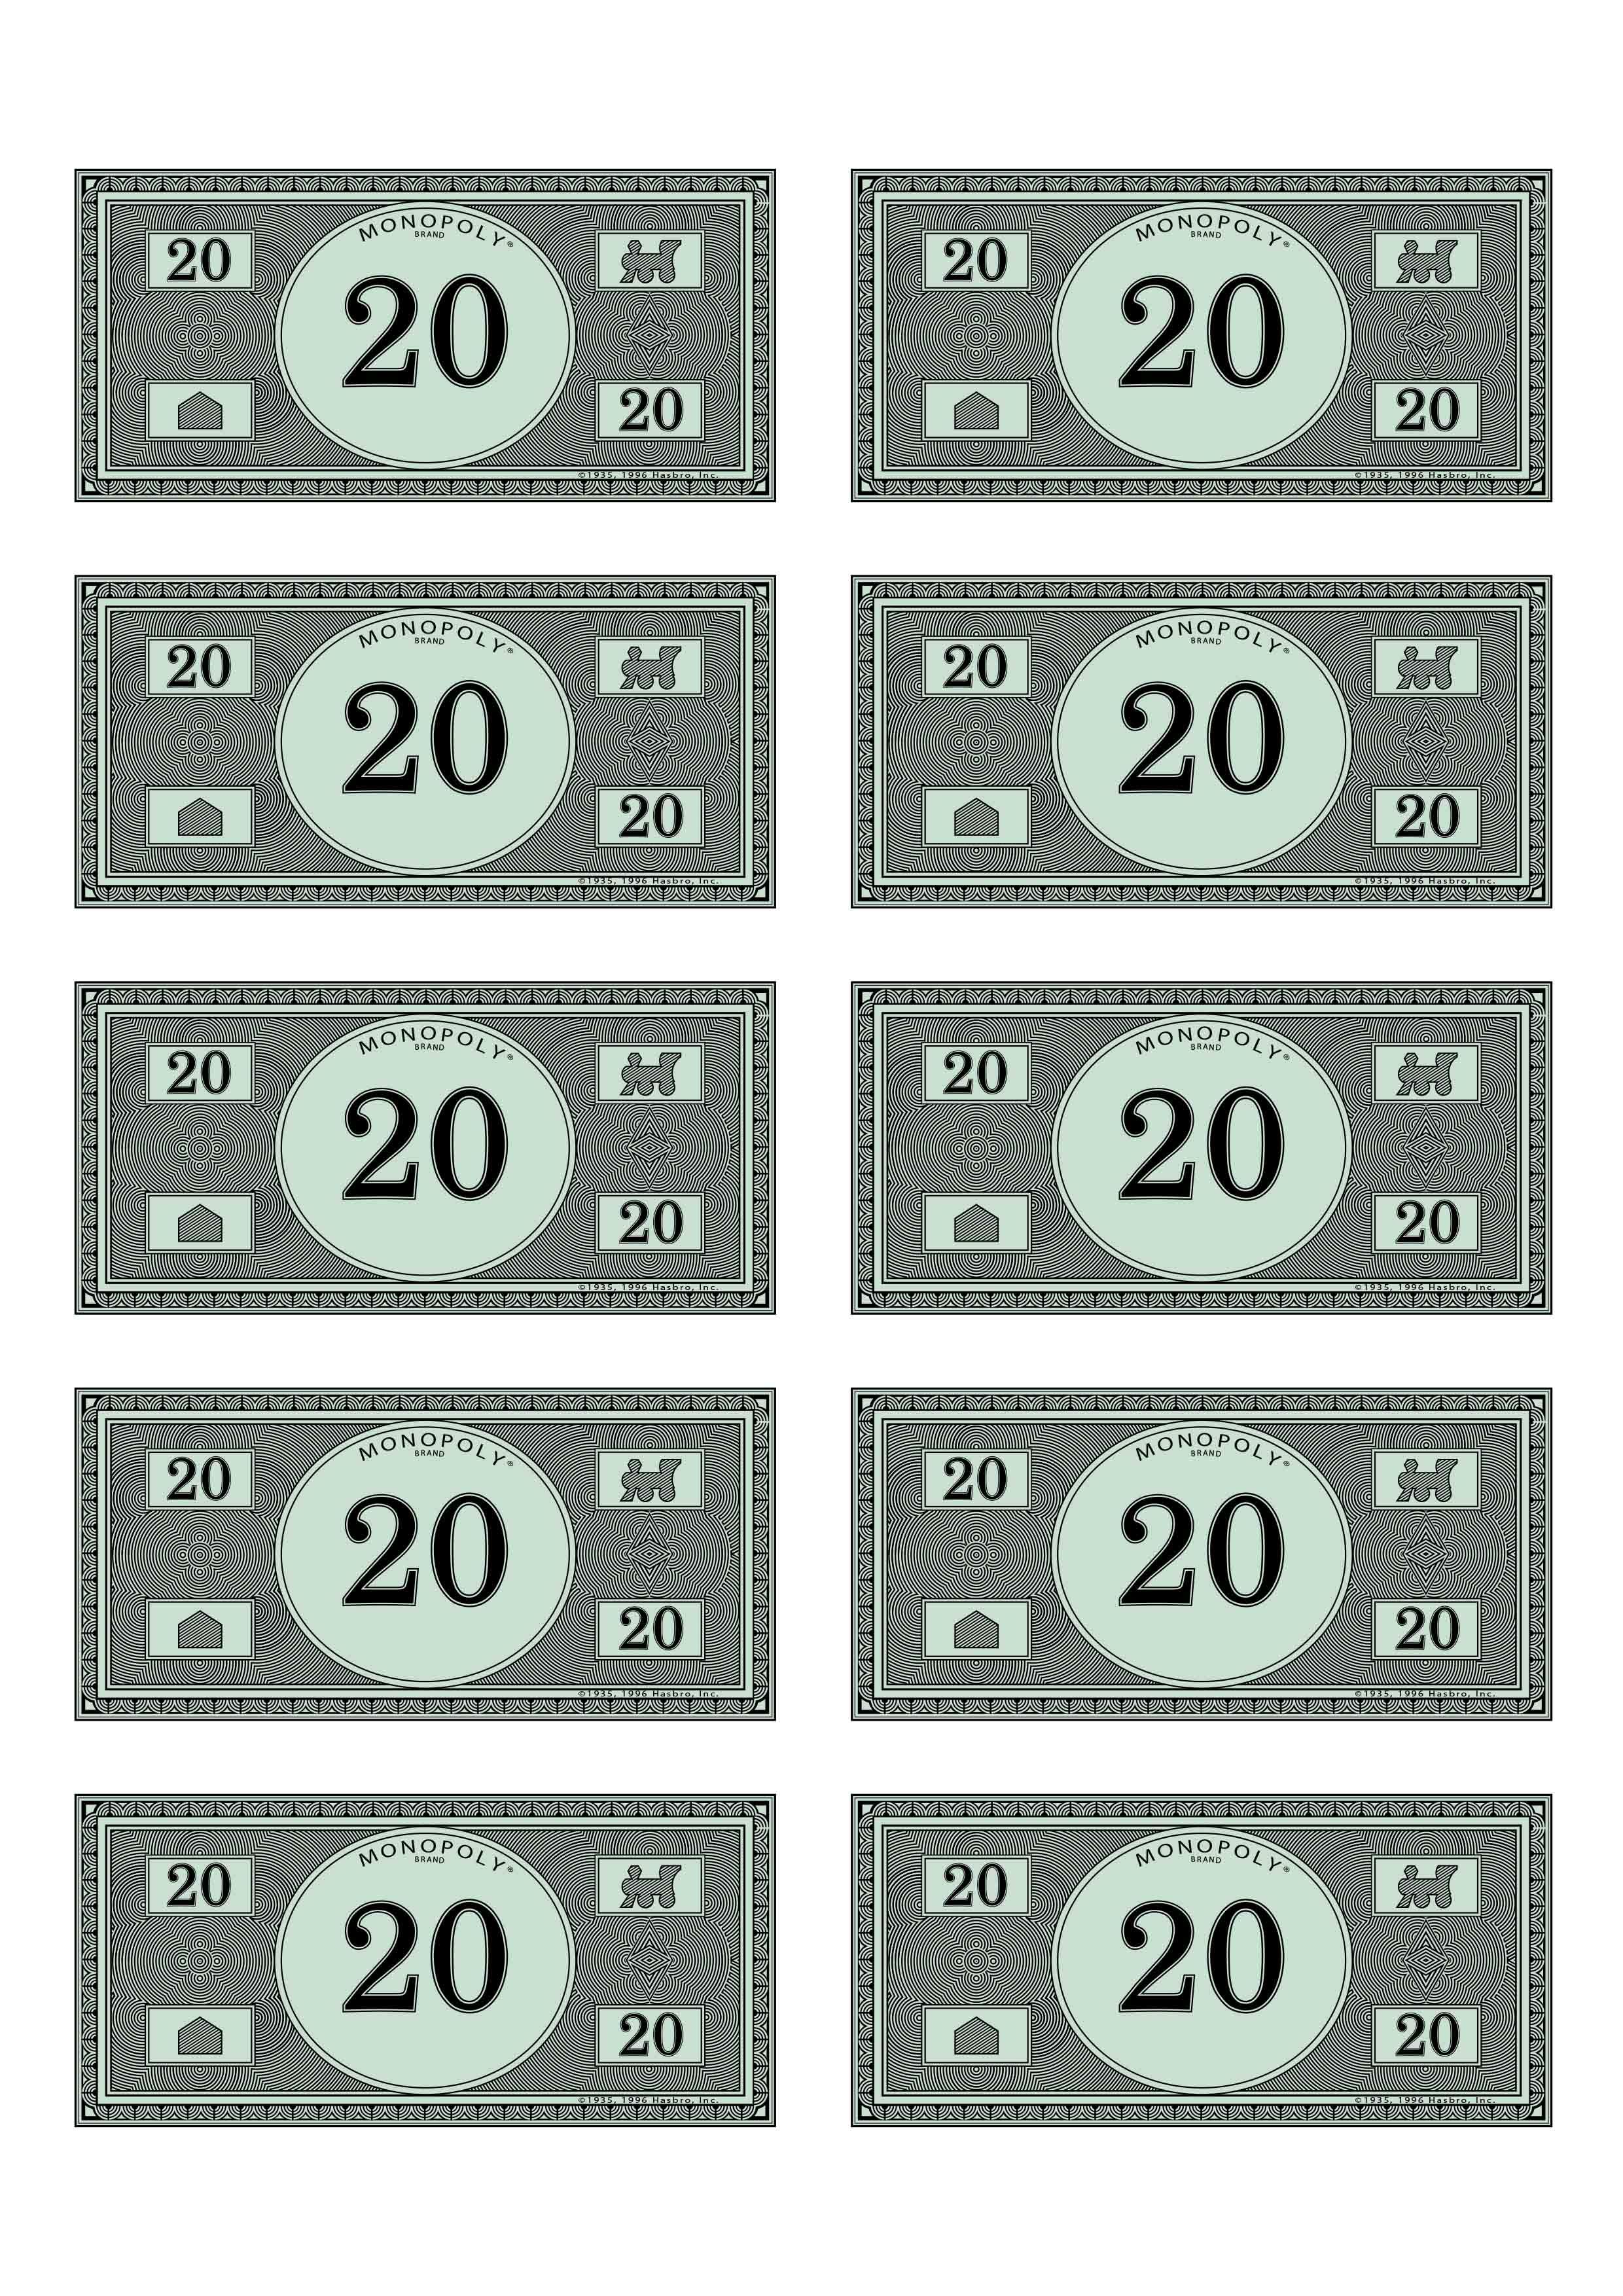 Monopoly money 20 budget pinterest for Custom monopoly board template